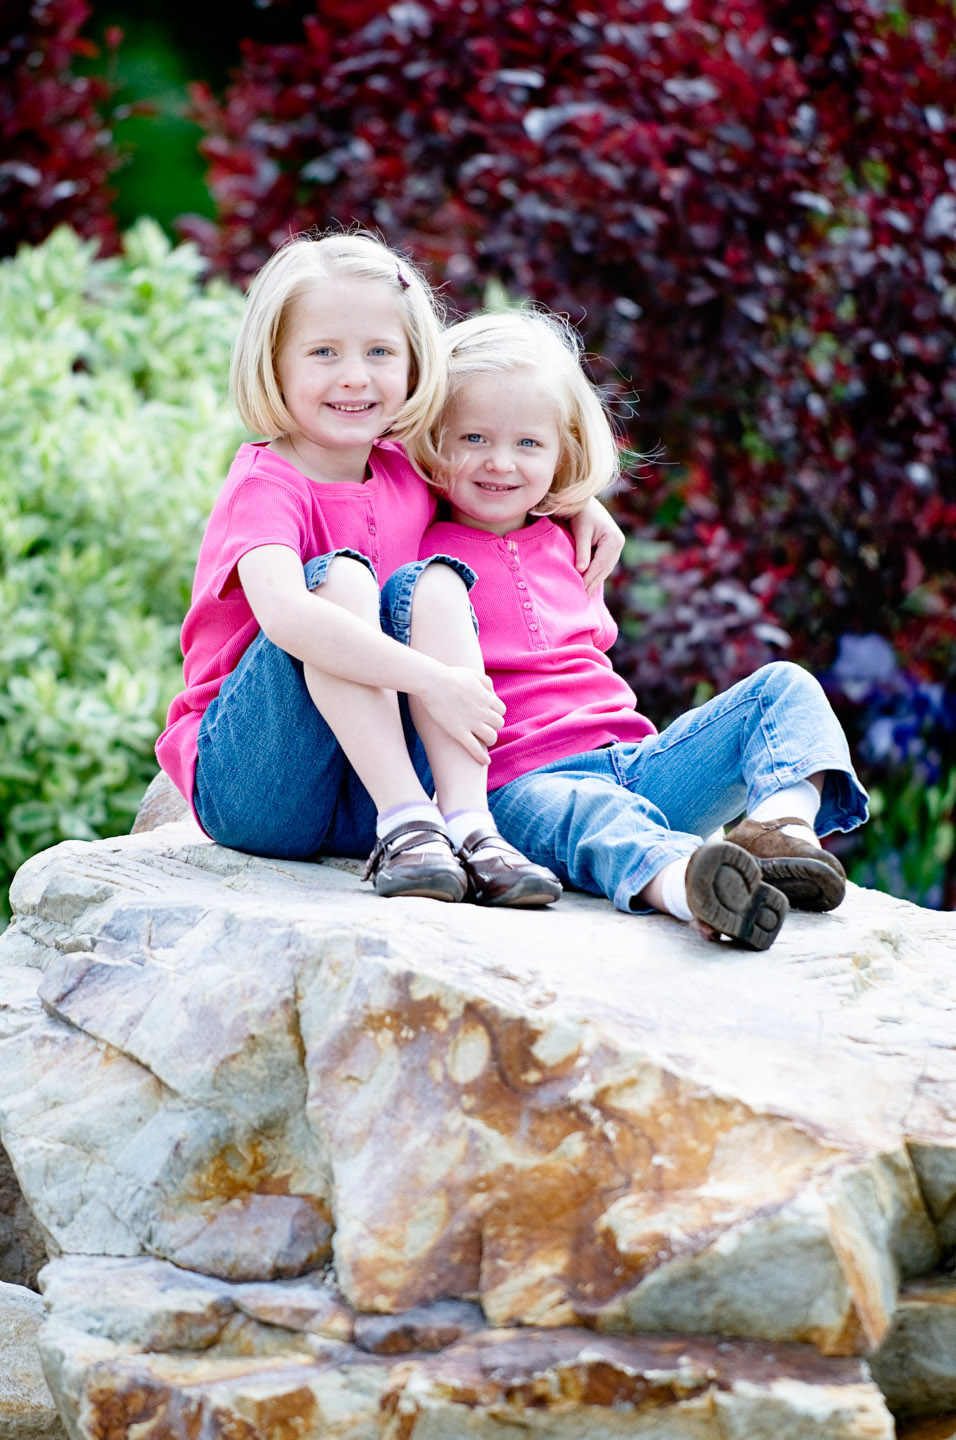 Maren and Julianne hang out on a rock